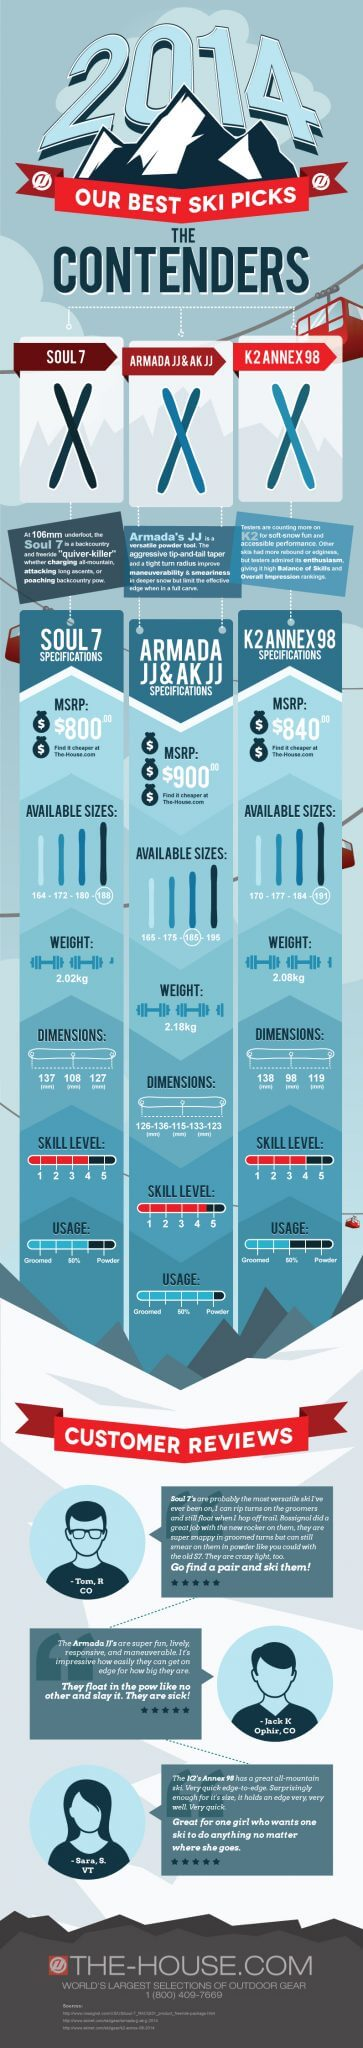 Top Rated Skis 2014